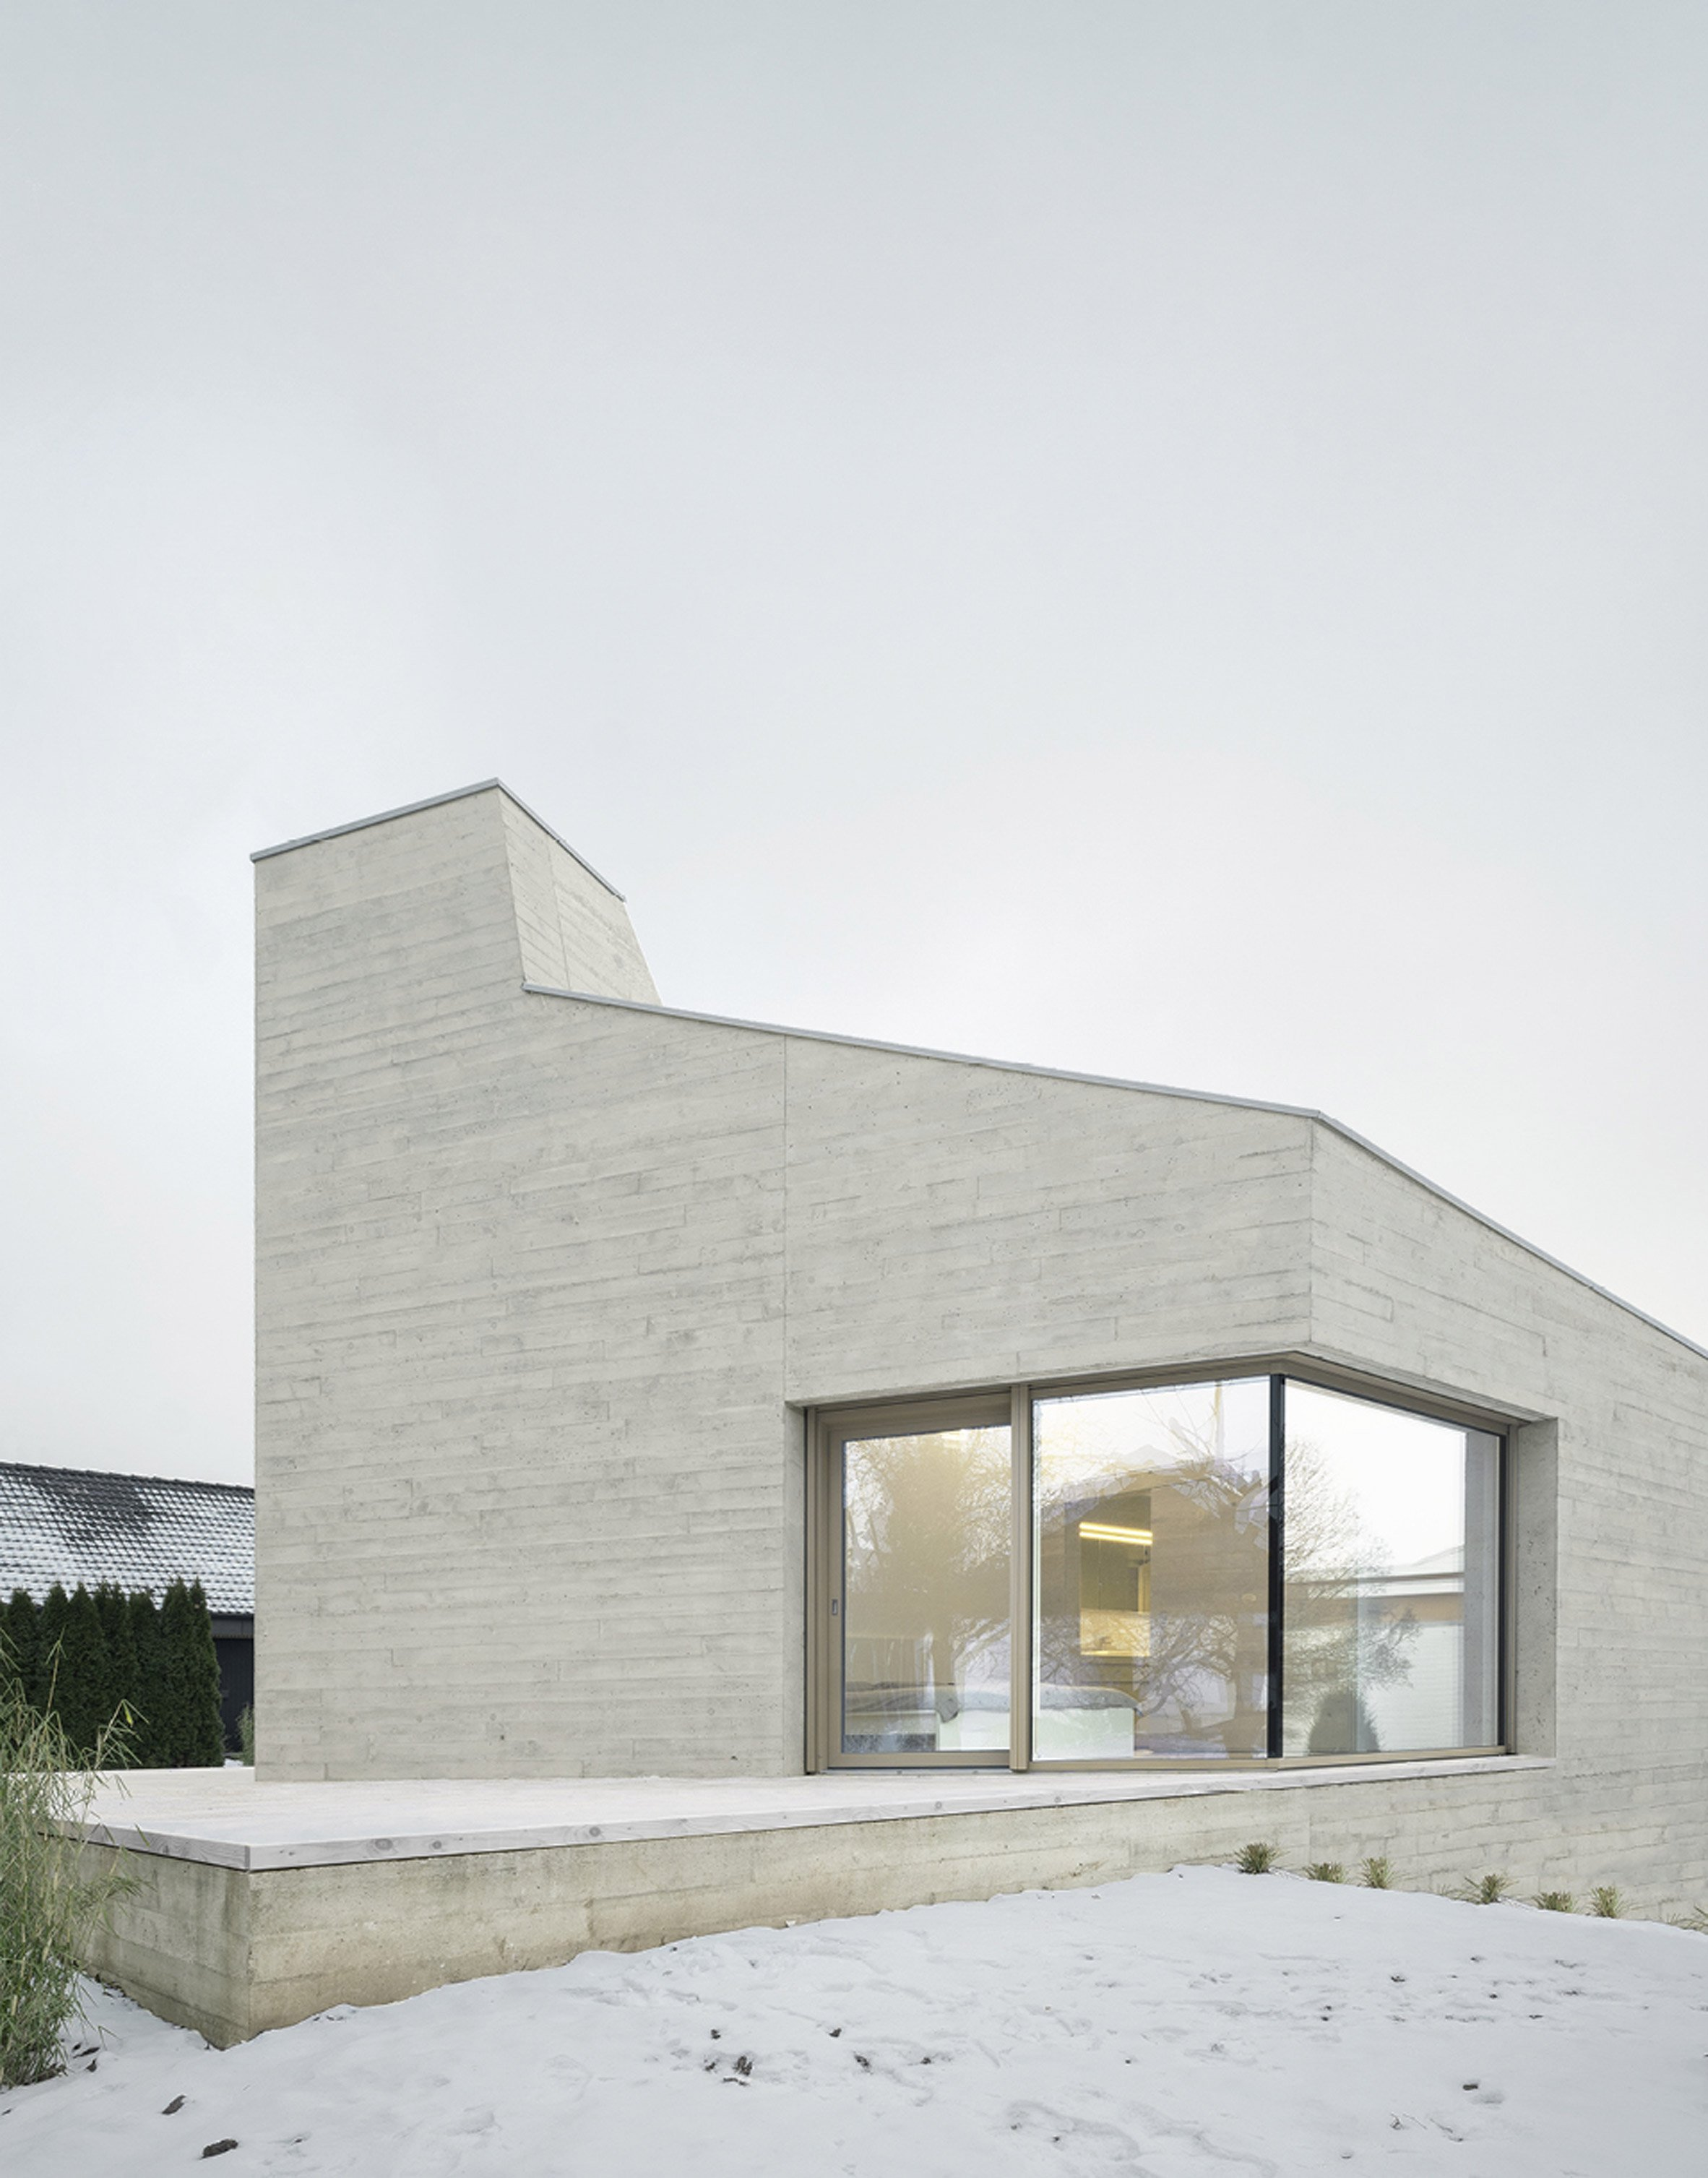 steimle architekten completes crystal like concrete house in germany minimal blogs. Black Bedroom Furniture Sets. Home Design Ideas